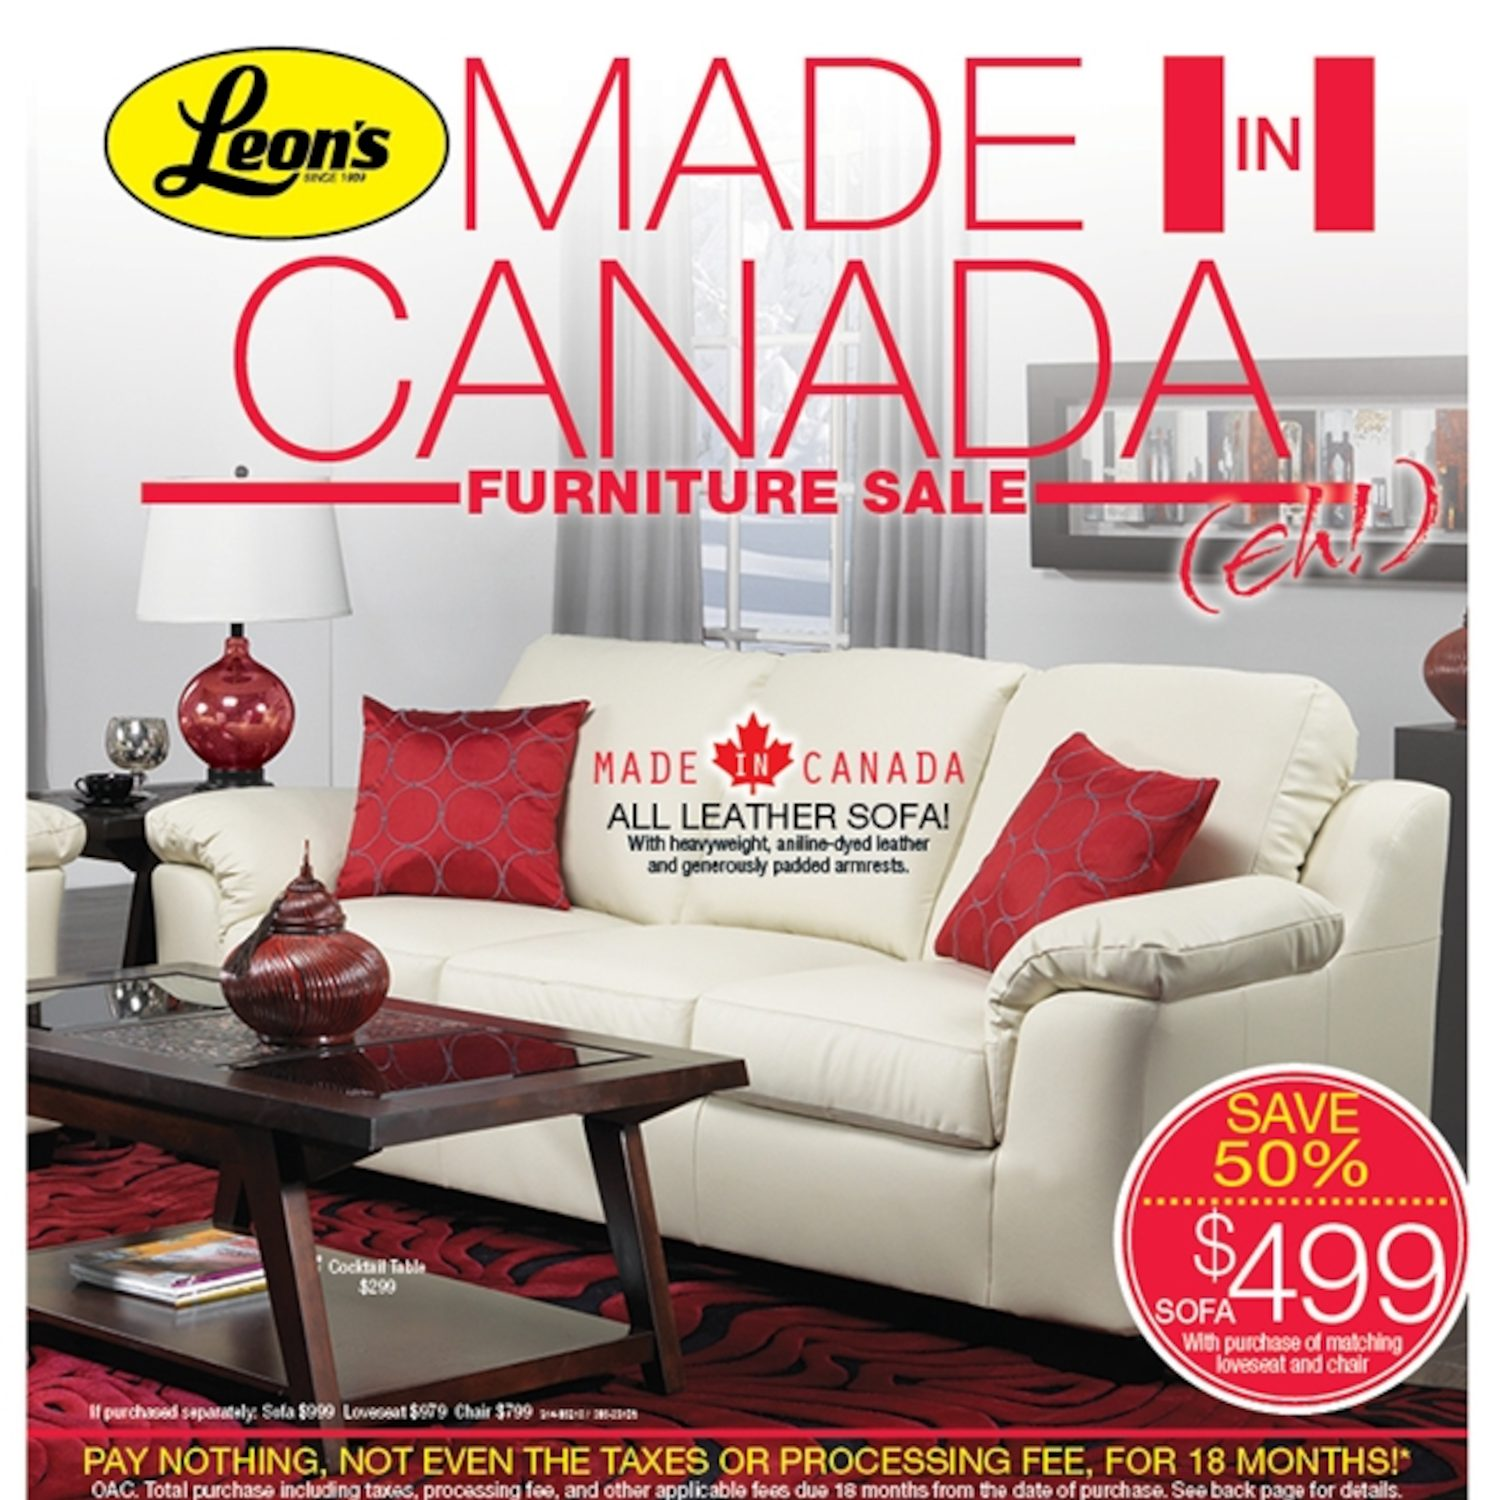 Admirable Leons Weekly Flyer Made In Canada Furniture Sale Feb 3 Gmtry Best Dining Table And Chair Ideas Images Gmtryco